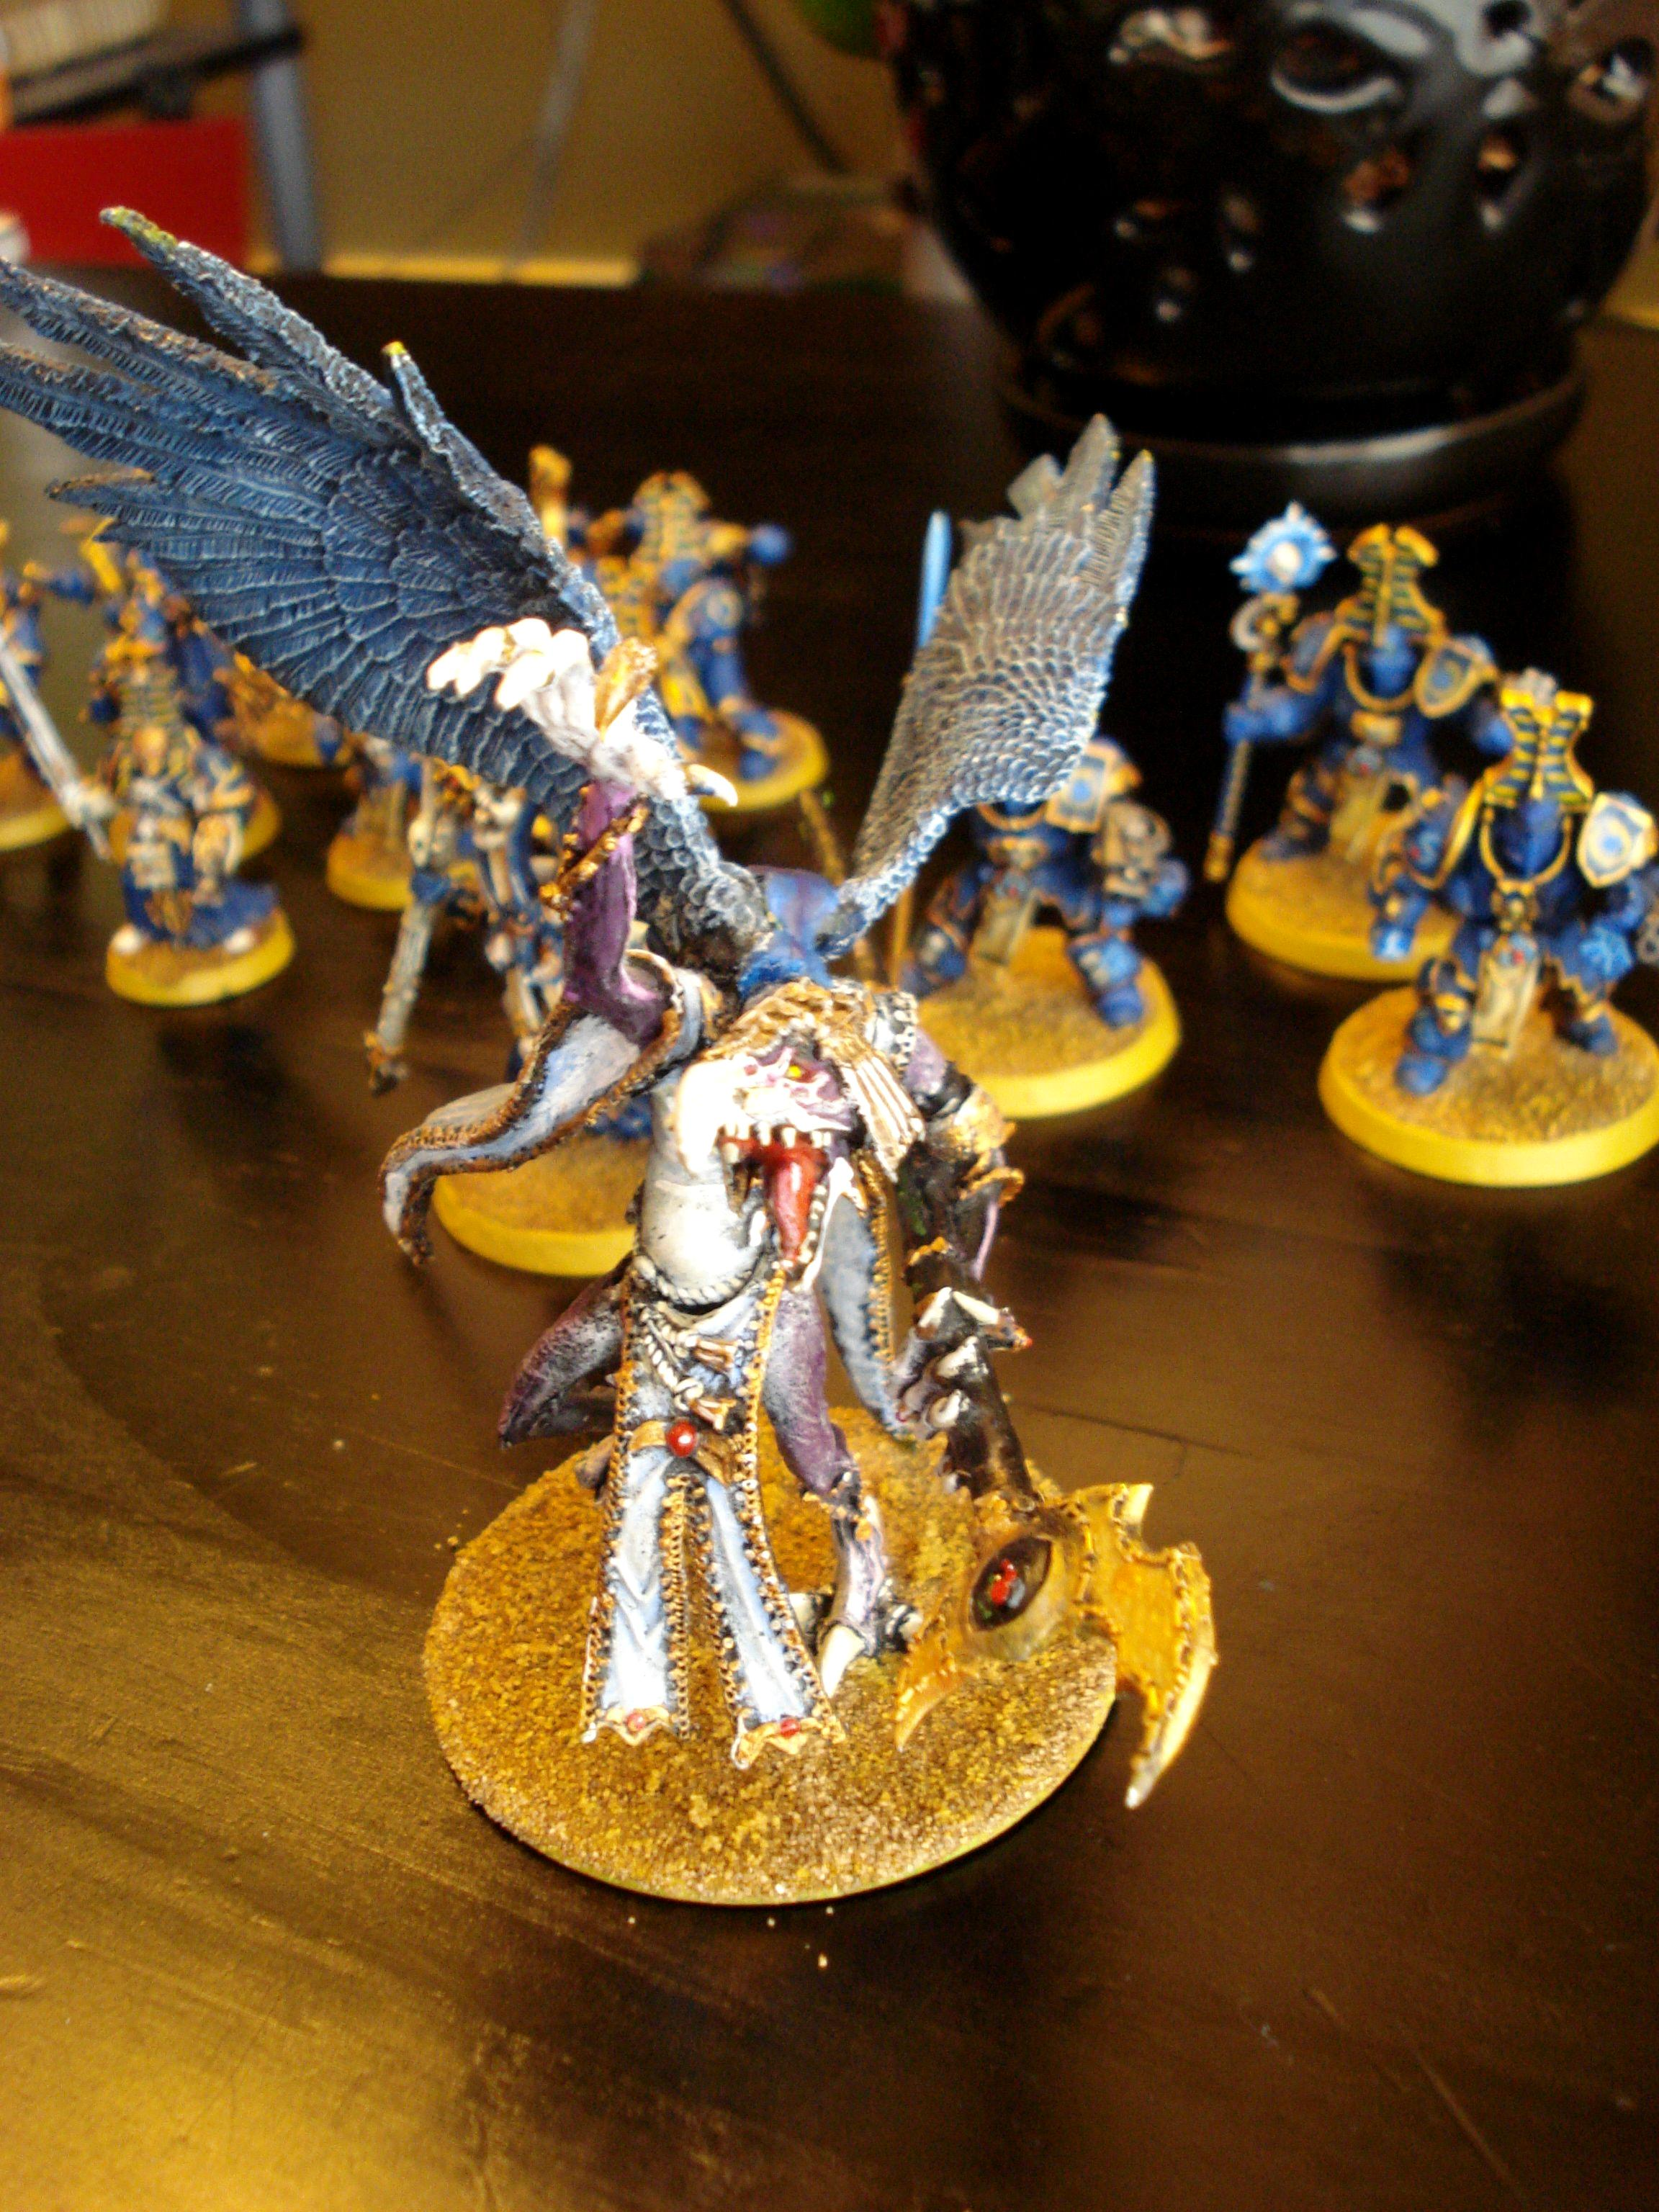 Chaos, Daemons, Greater Daemon, Lord Of Change, Thousand Sons, Tzeentch